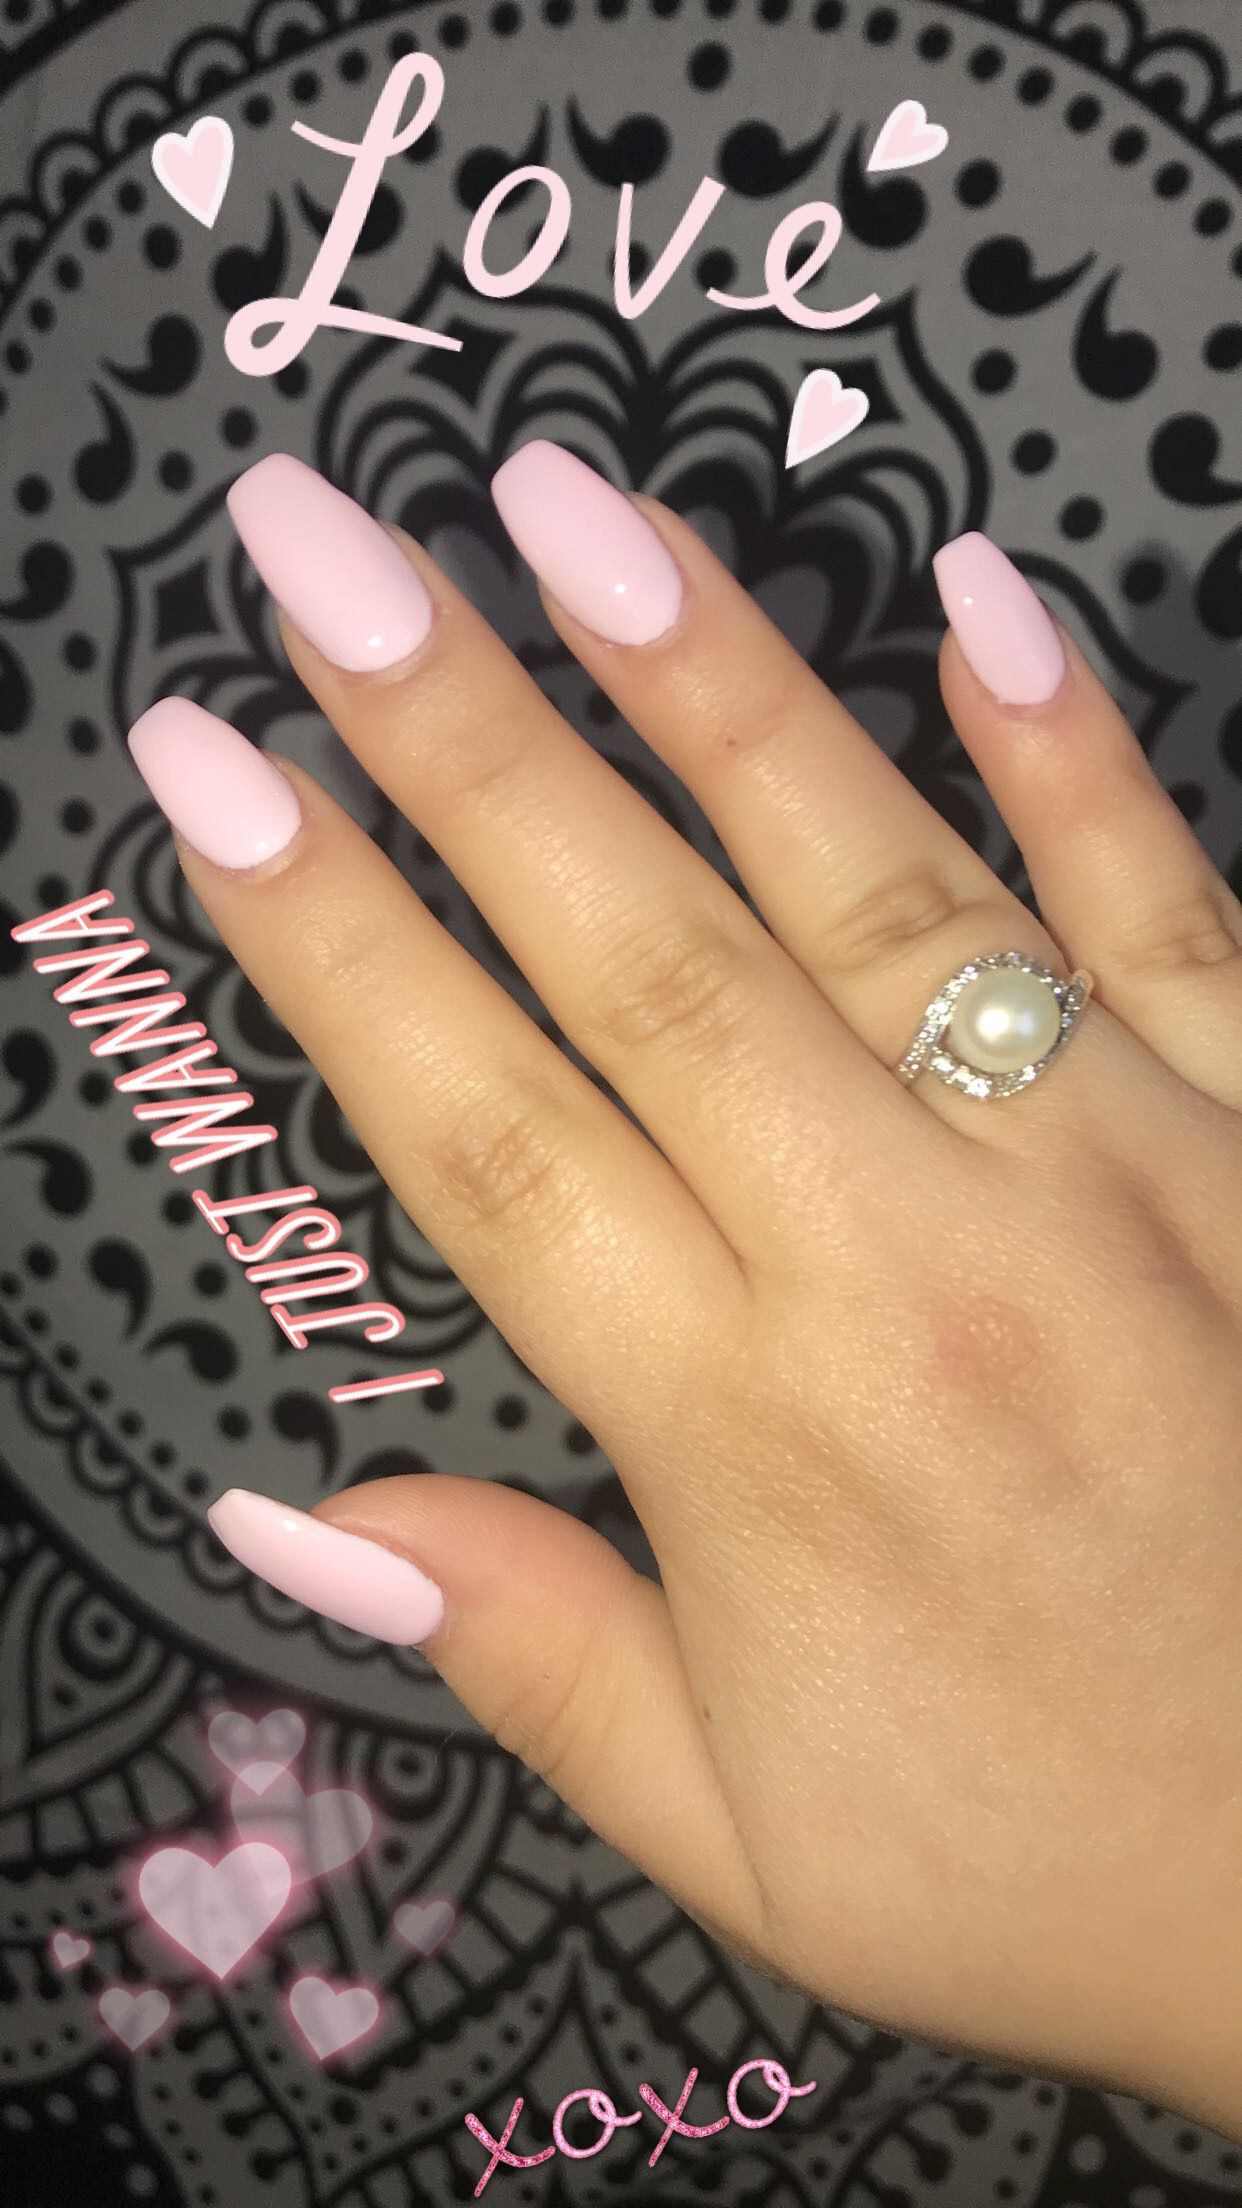 Pink Acrylic Coffin Nails Pink Acrylic Nails Summer Acrylic Nails Short Acrylic Nails